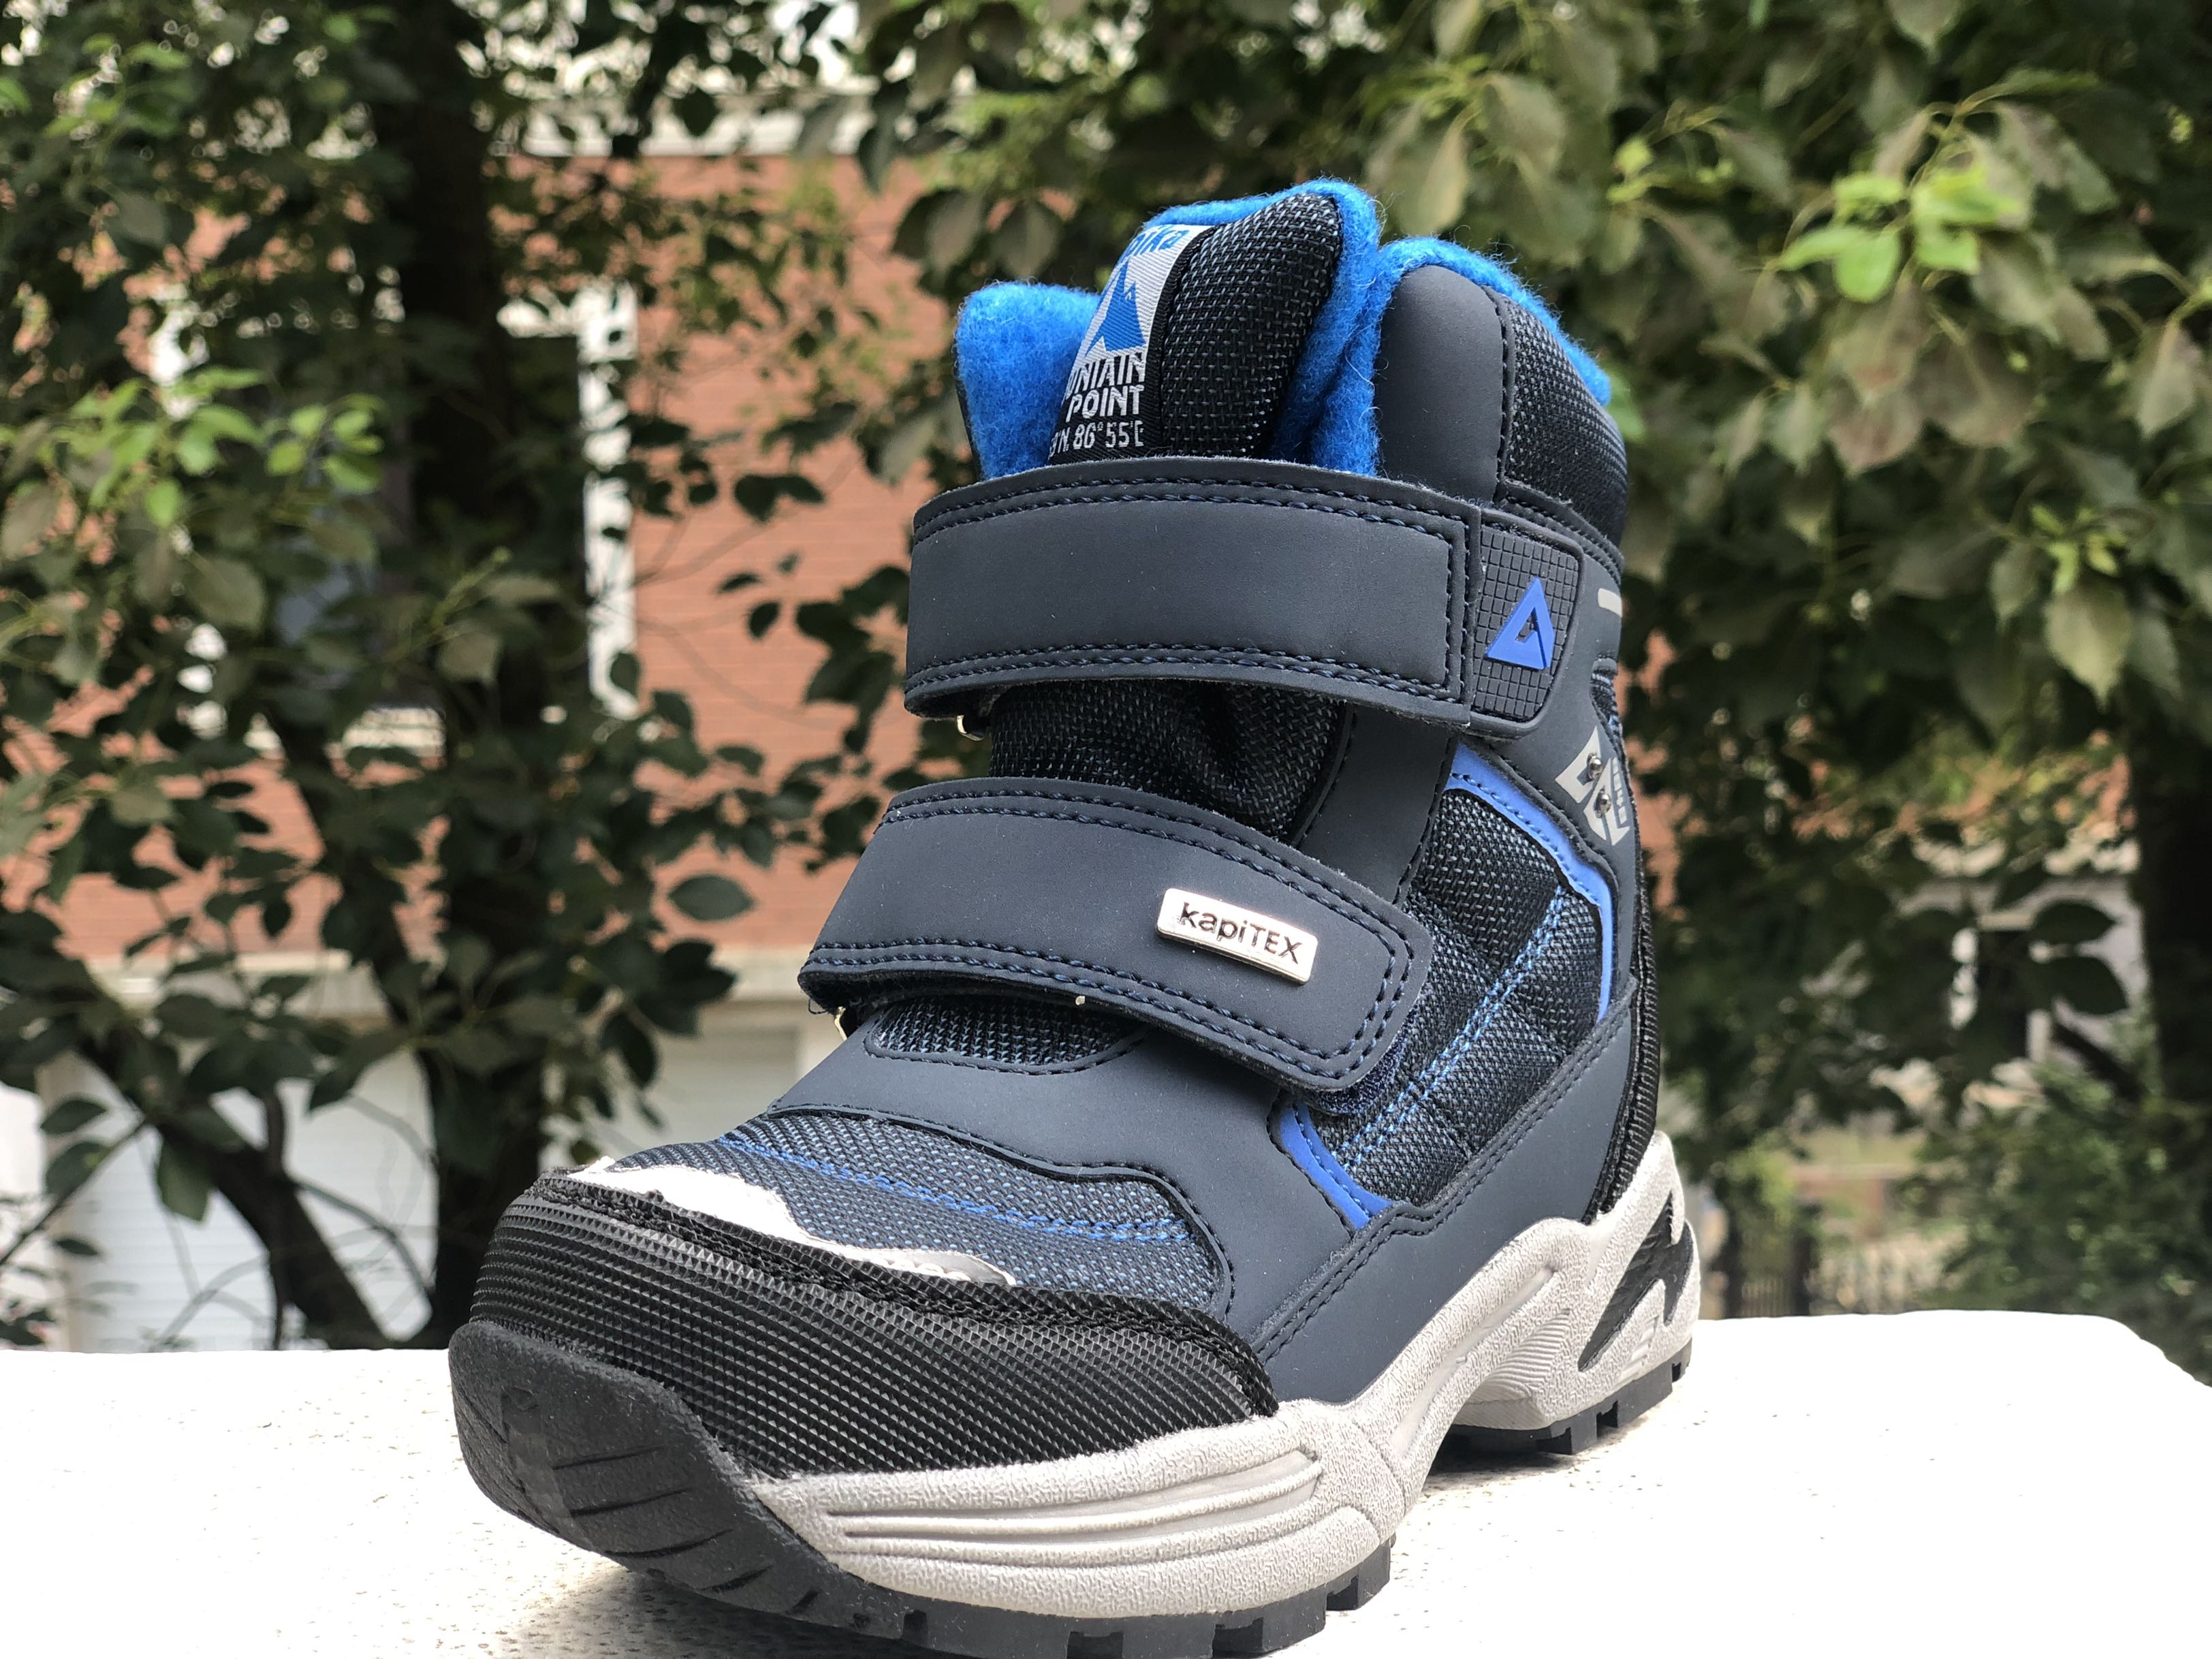 Waterproof Baby Boys Snow Boots Winter -30 Degrees Non-slip Children Shoes Super Warm Fashion Boots With Wool Size 28-32